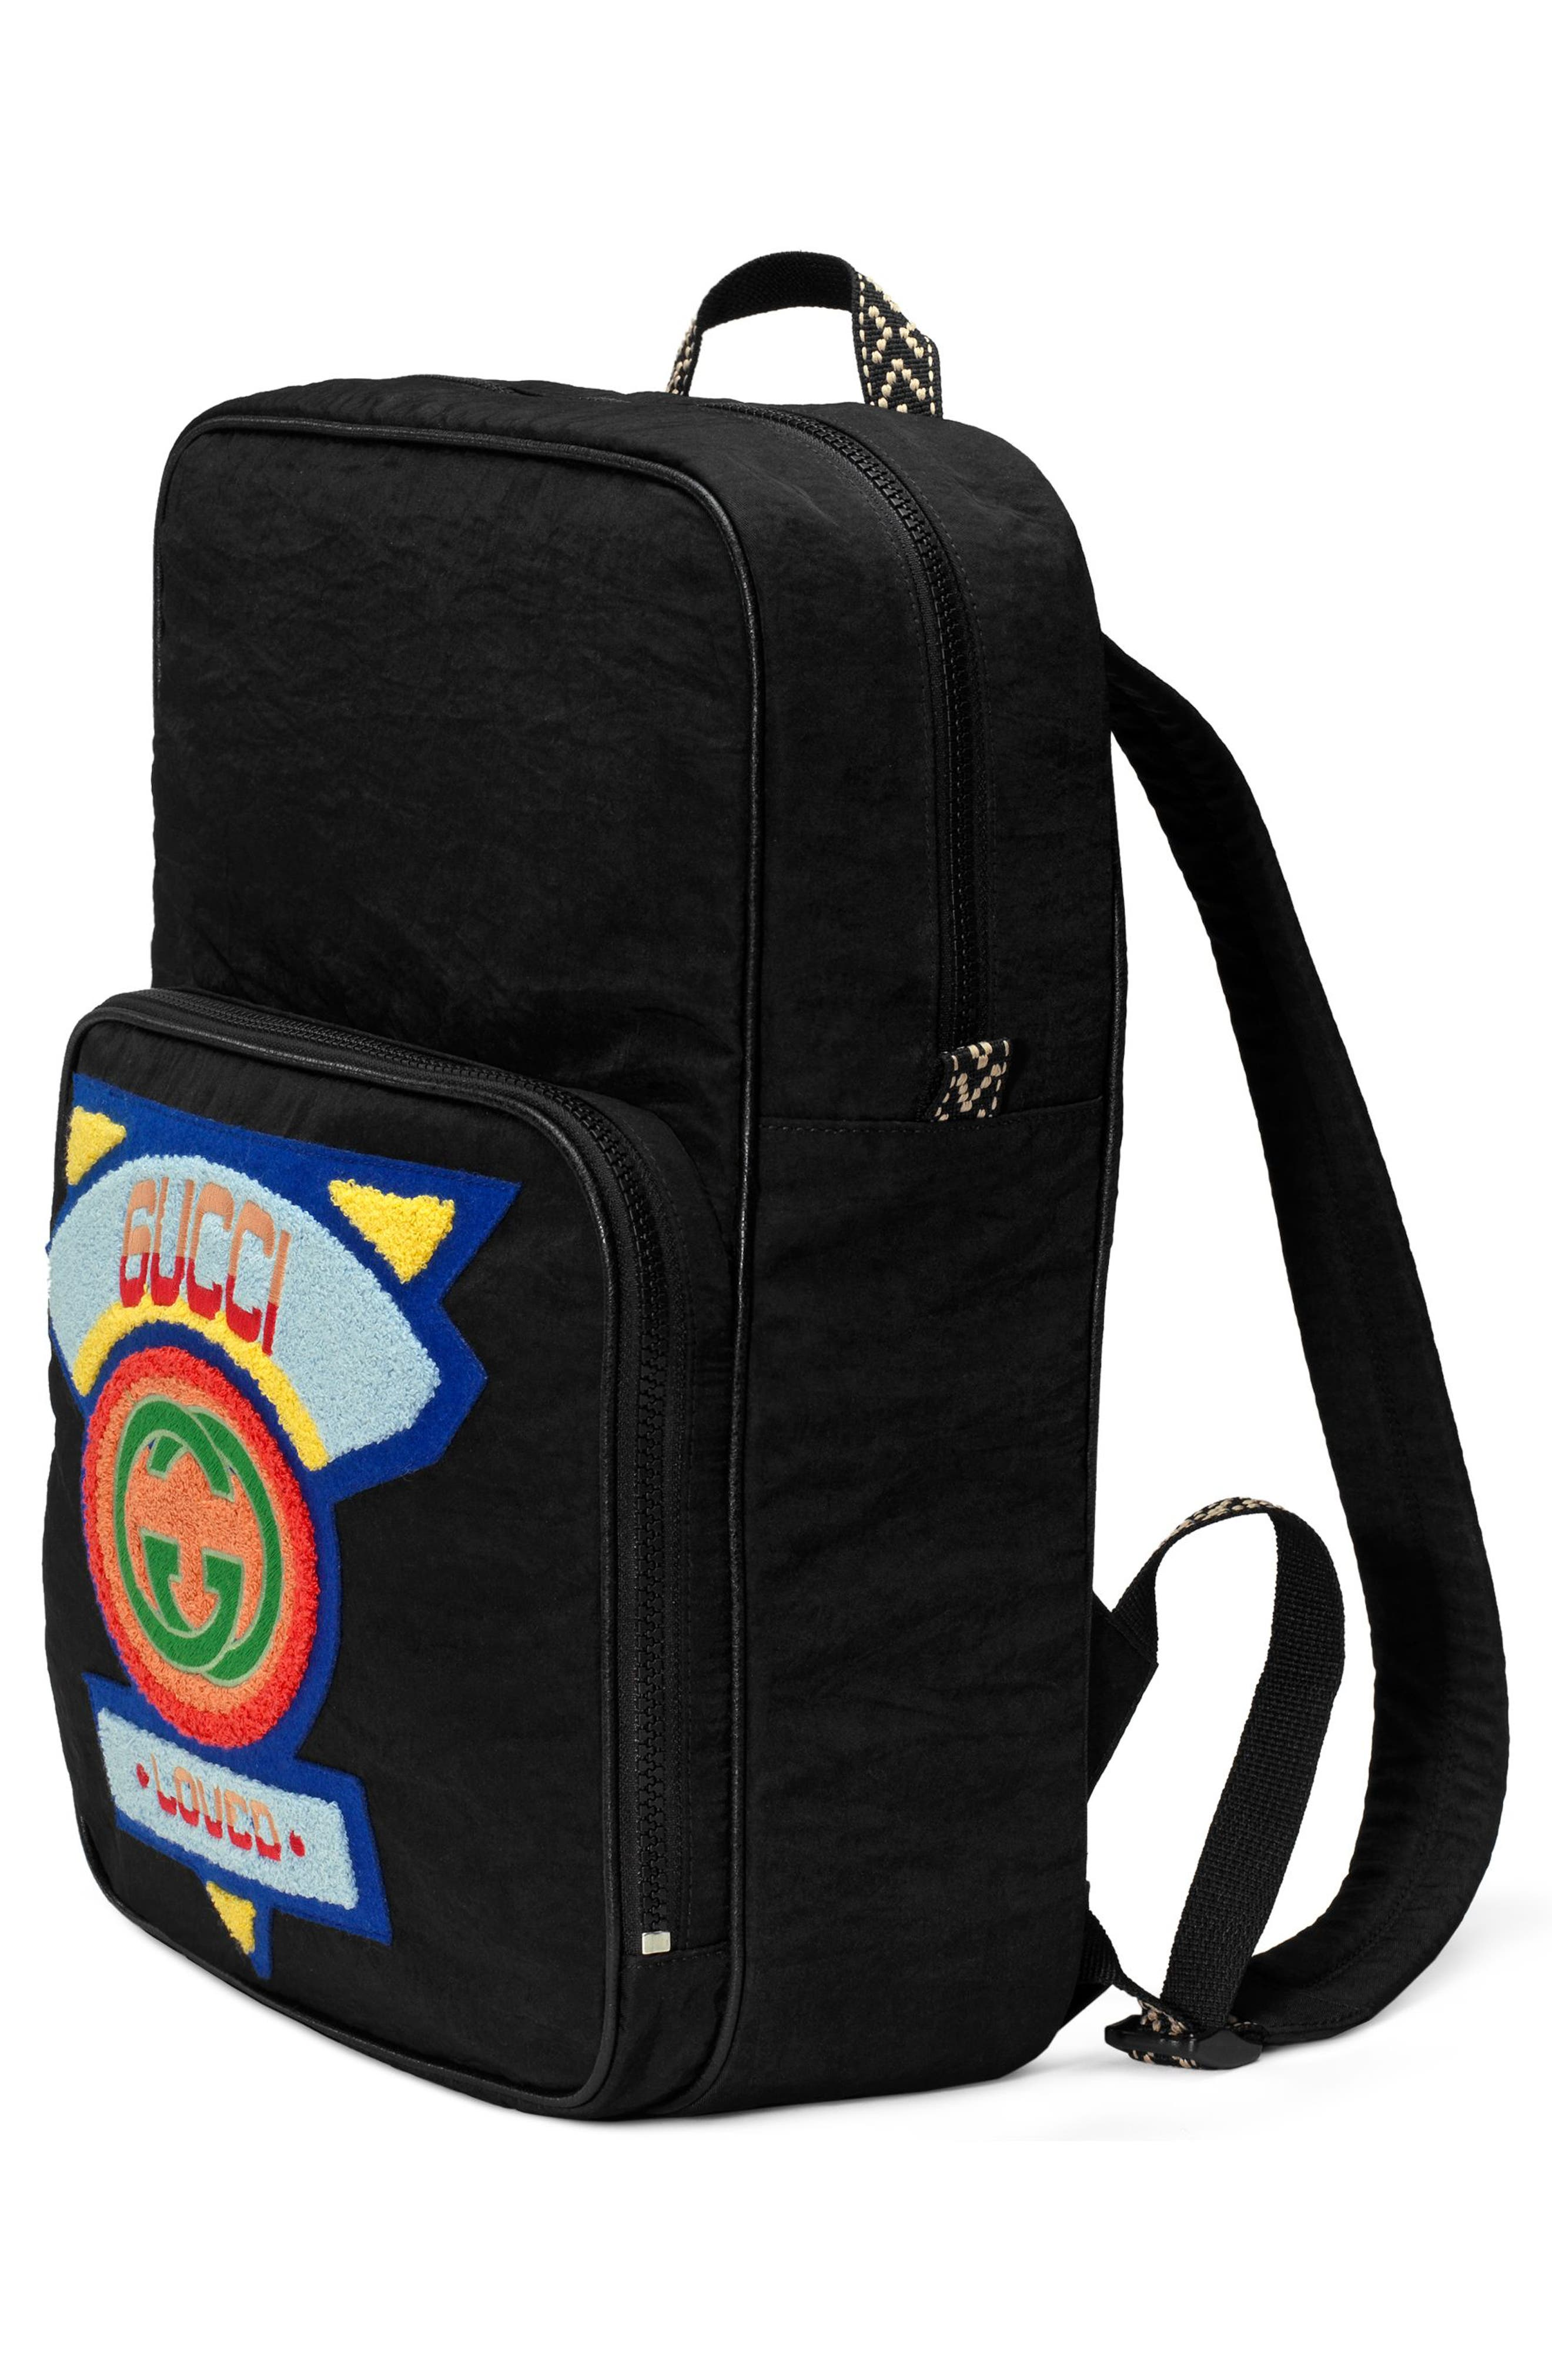 Patch Backpack,                             Alternate thumbnail 4, color,                             BLACK